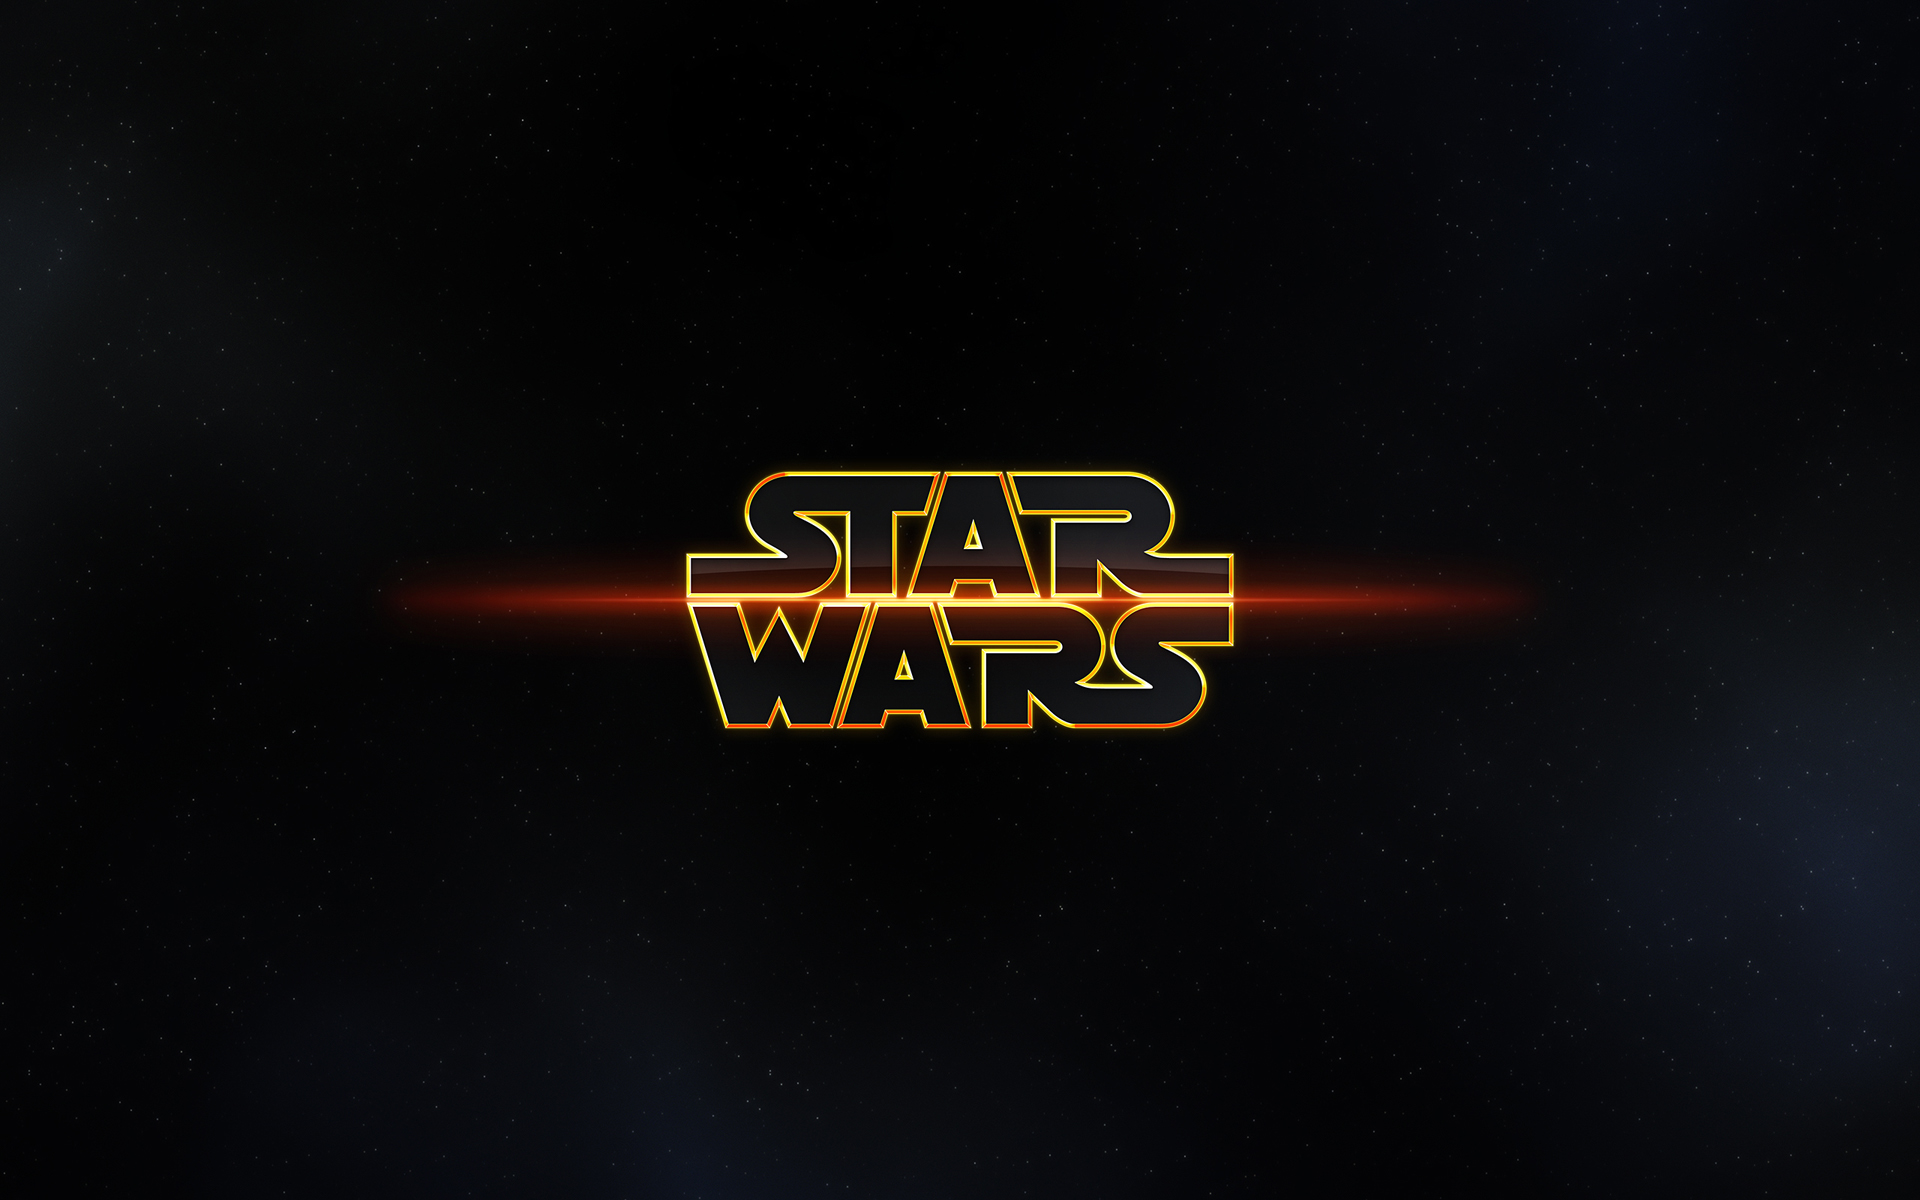 Best Star Wars 2015 HD Wallpaper HDpixels 1920x1200